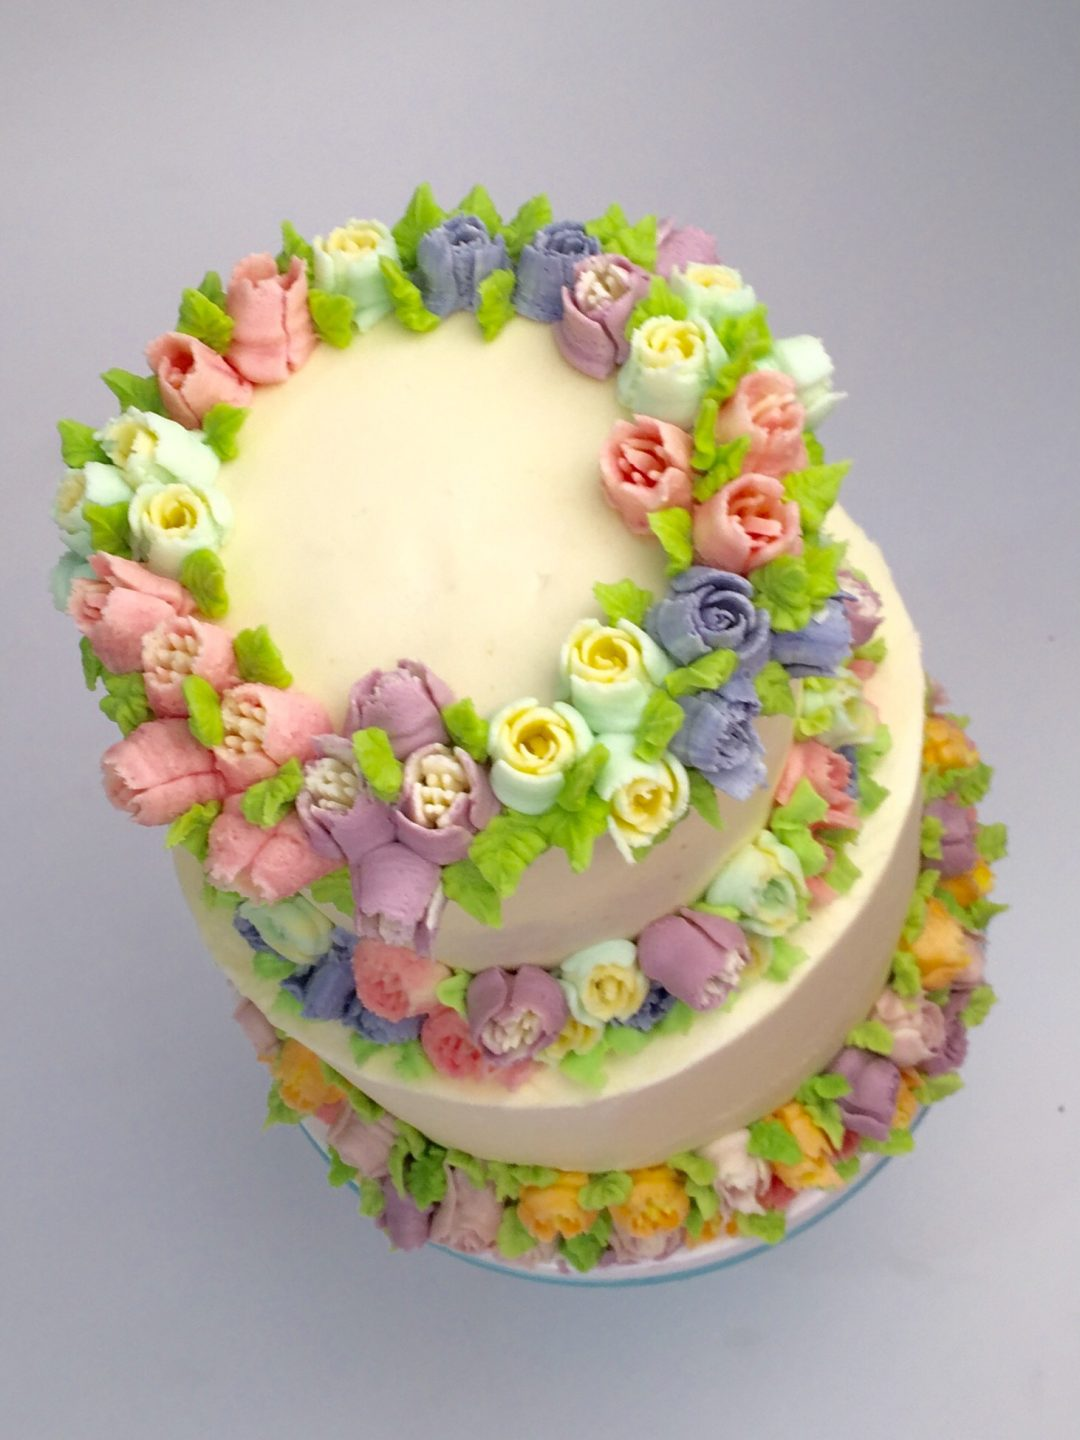 Piping Design Ideas On Side Of Cake